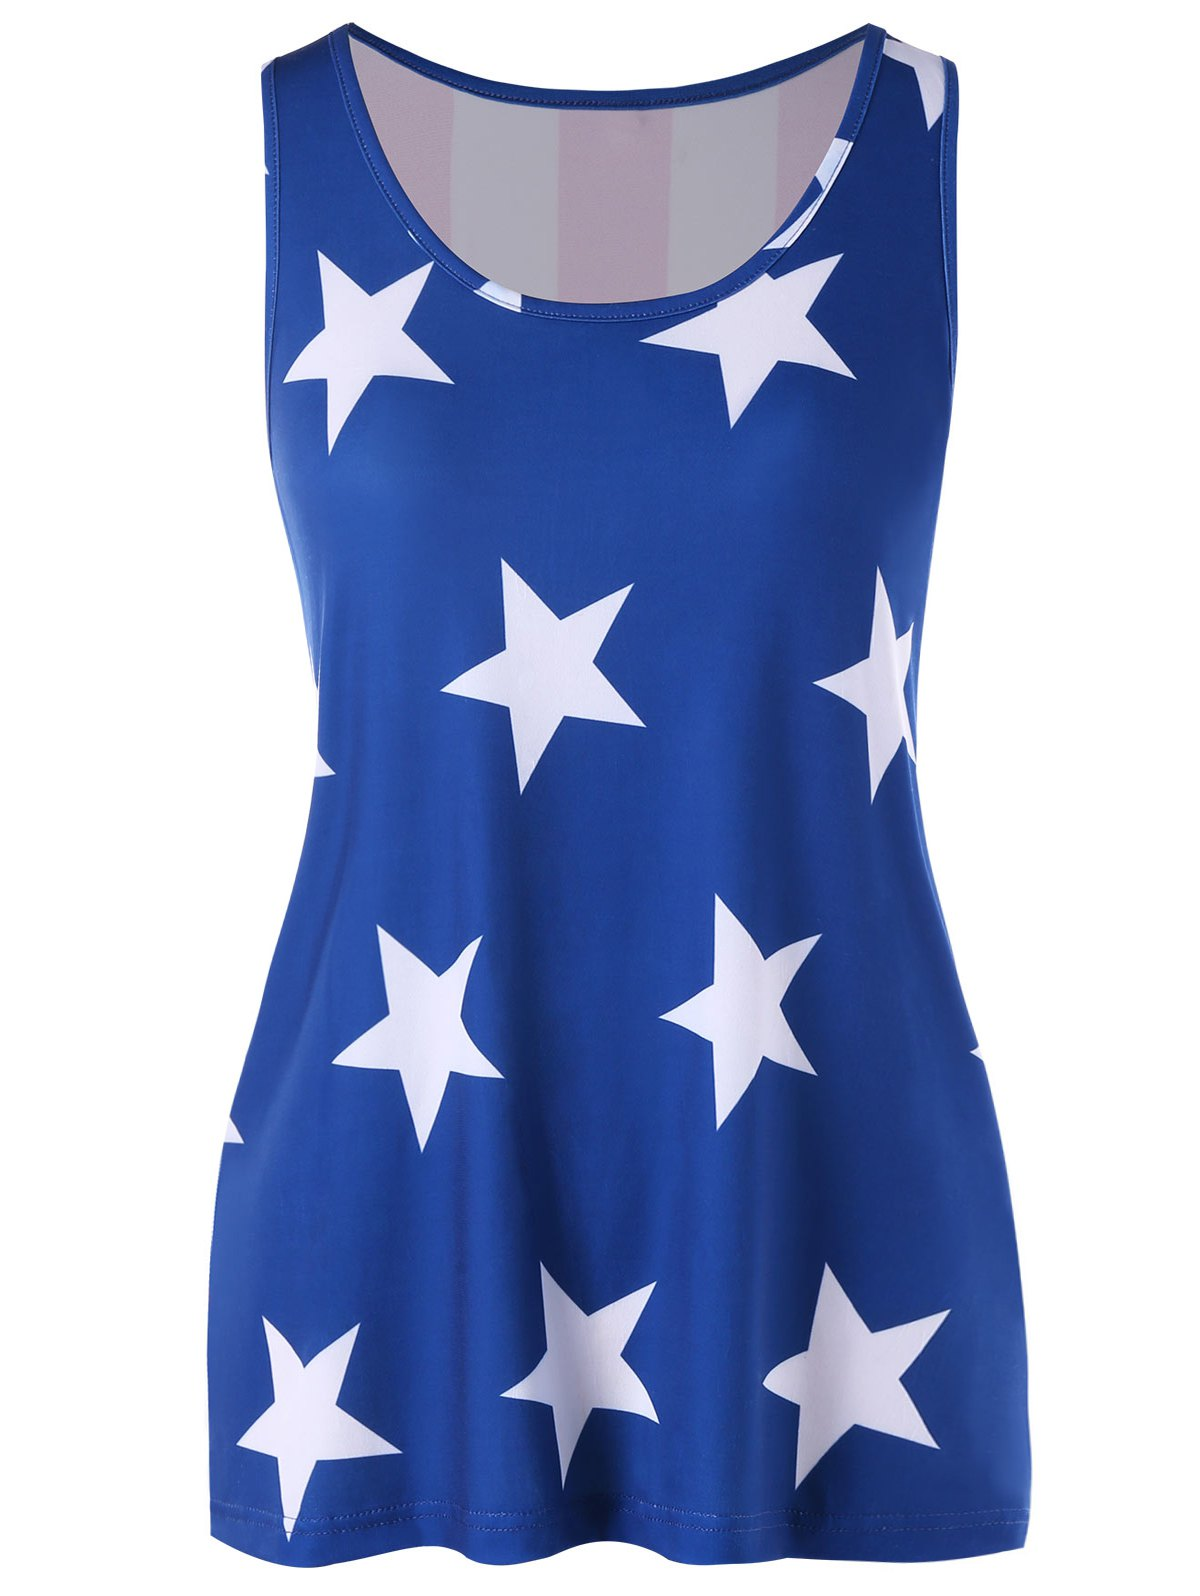 Chic Stars Front and Striped Back Tank Top